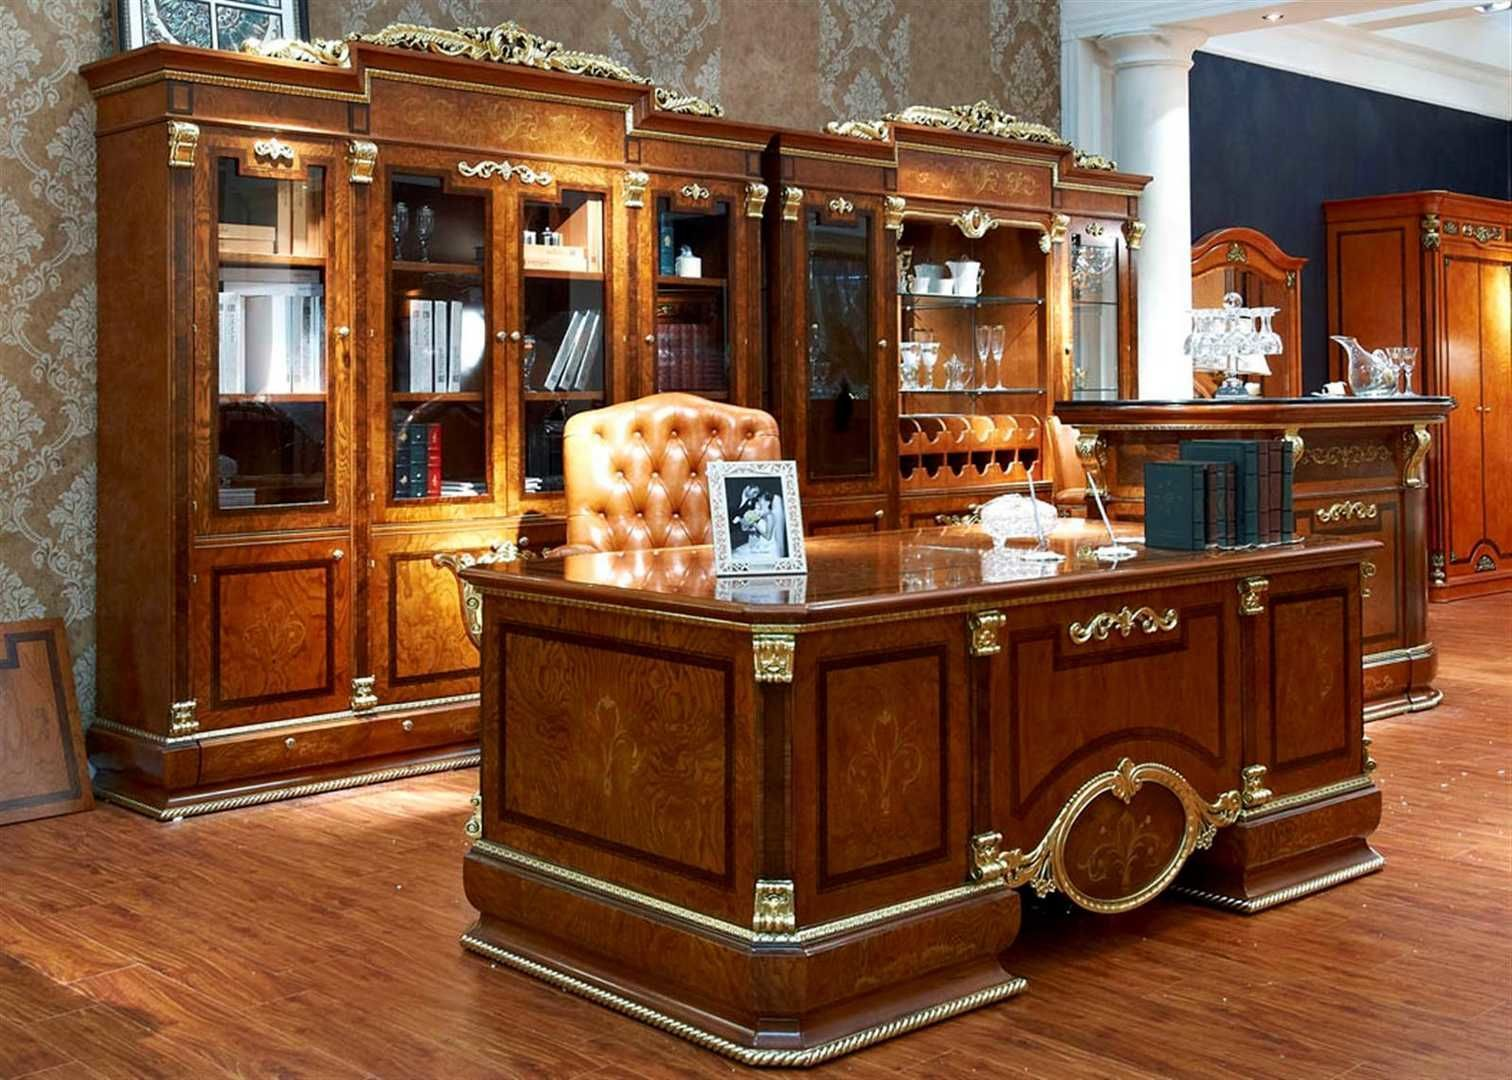 Bed Designer Online Bed Designer Bed Designs In Kenya Bed Designs For Boy Traditional Home Office Furniture Home Office Furniture Sets Vintage Home Offices